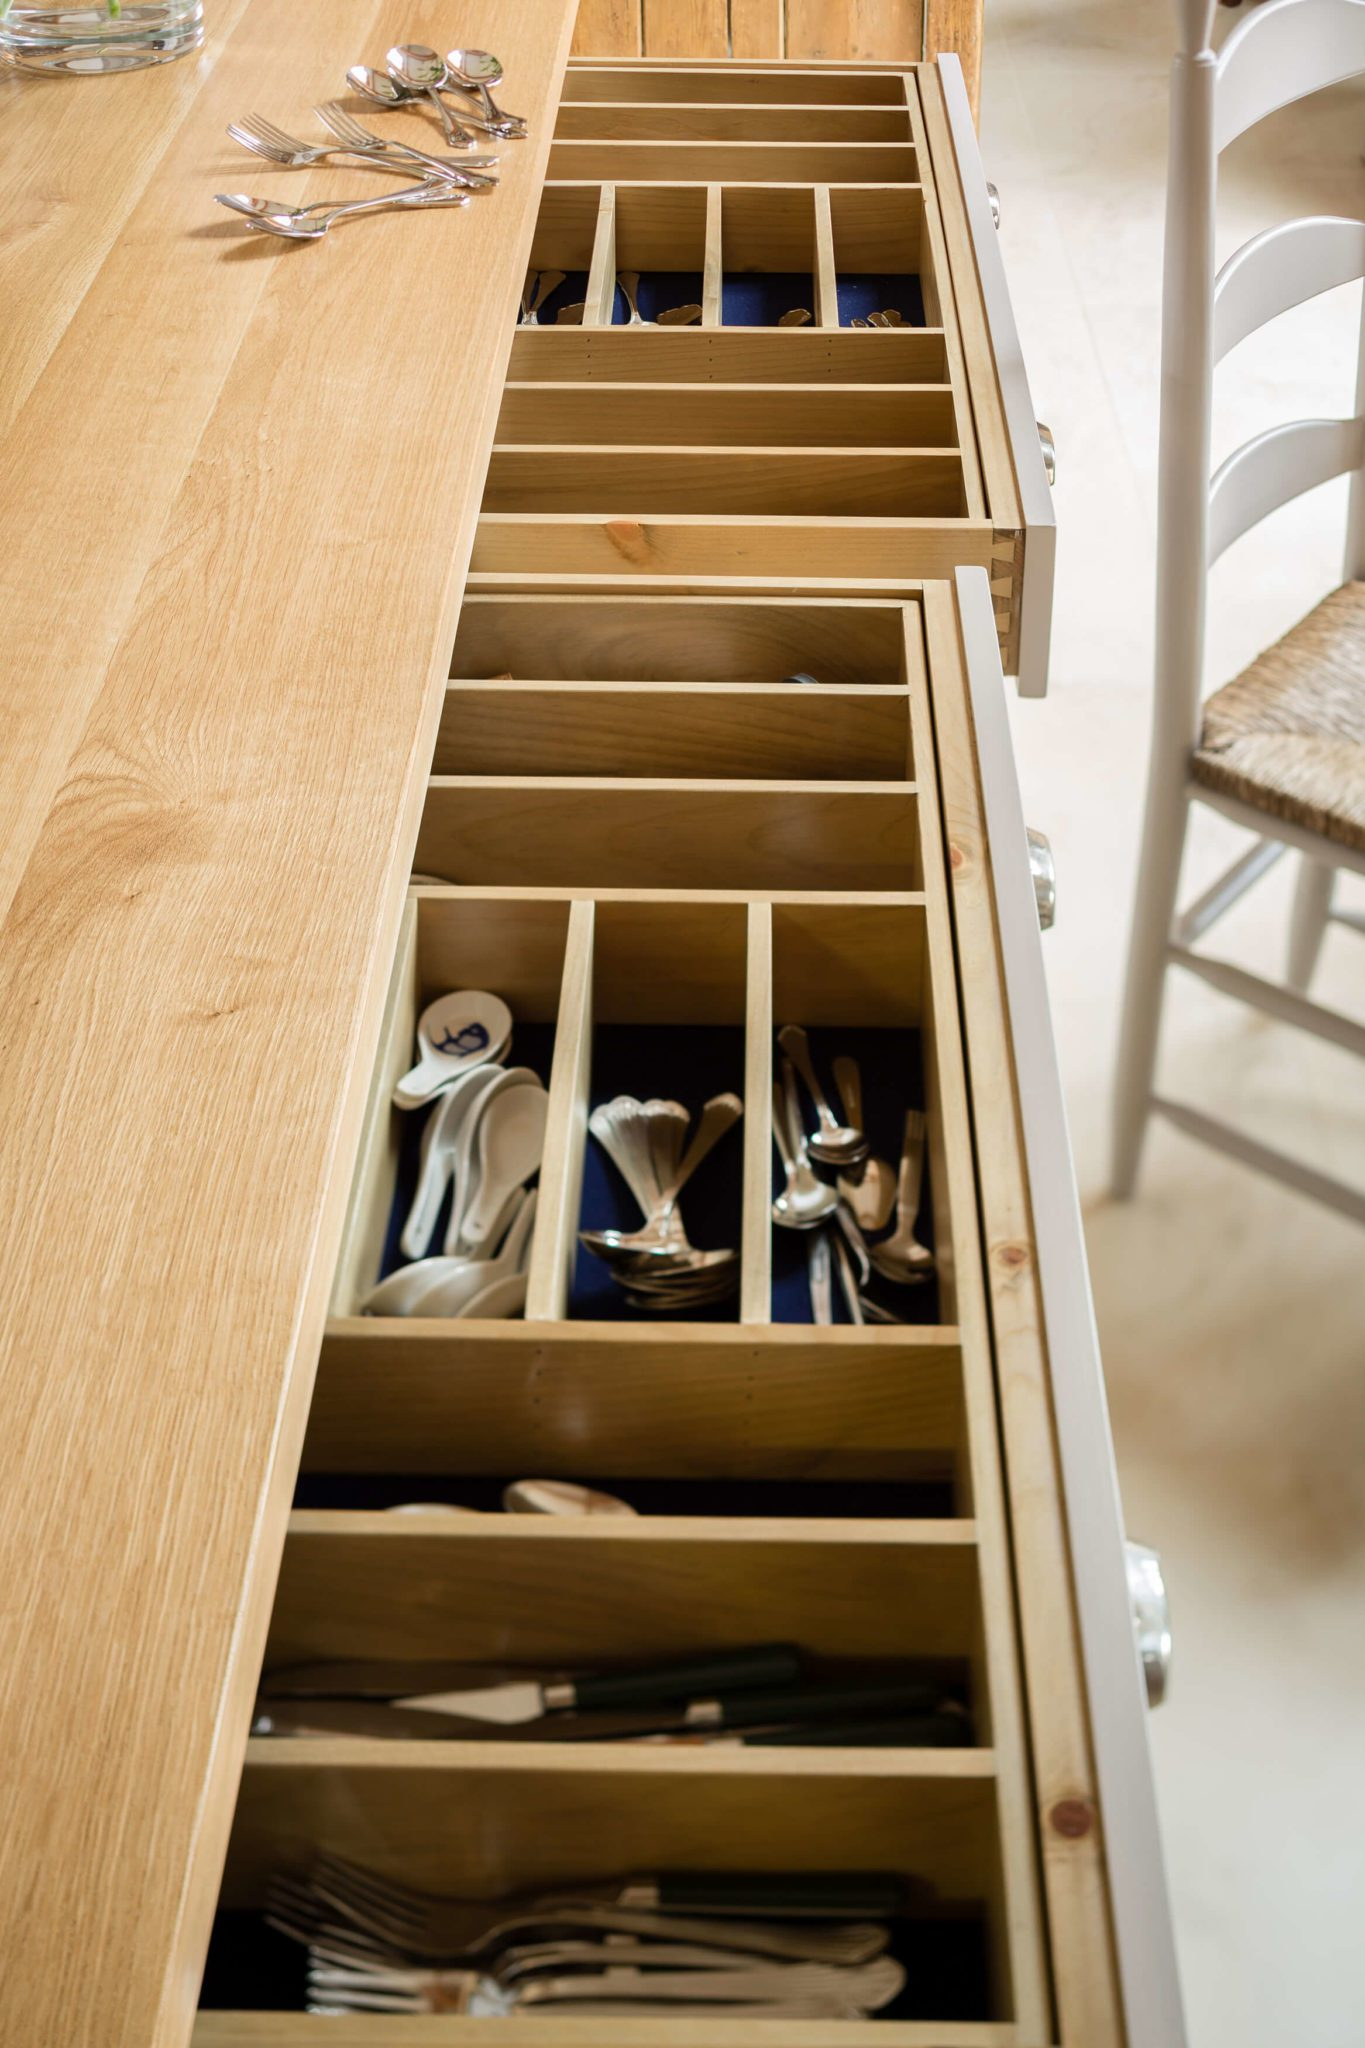 Luxury Kitchen Drawers - Hill Farm Furniture